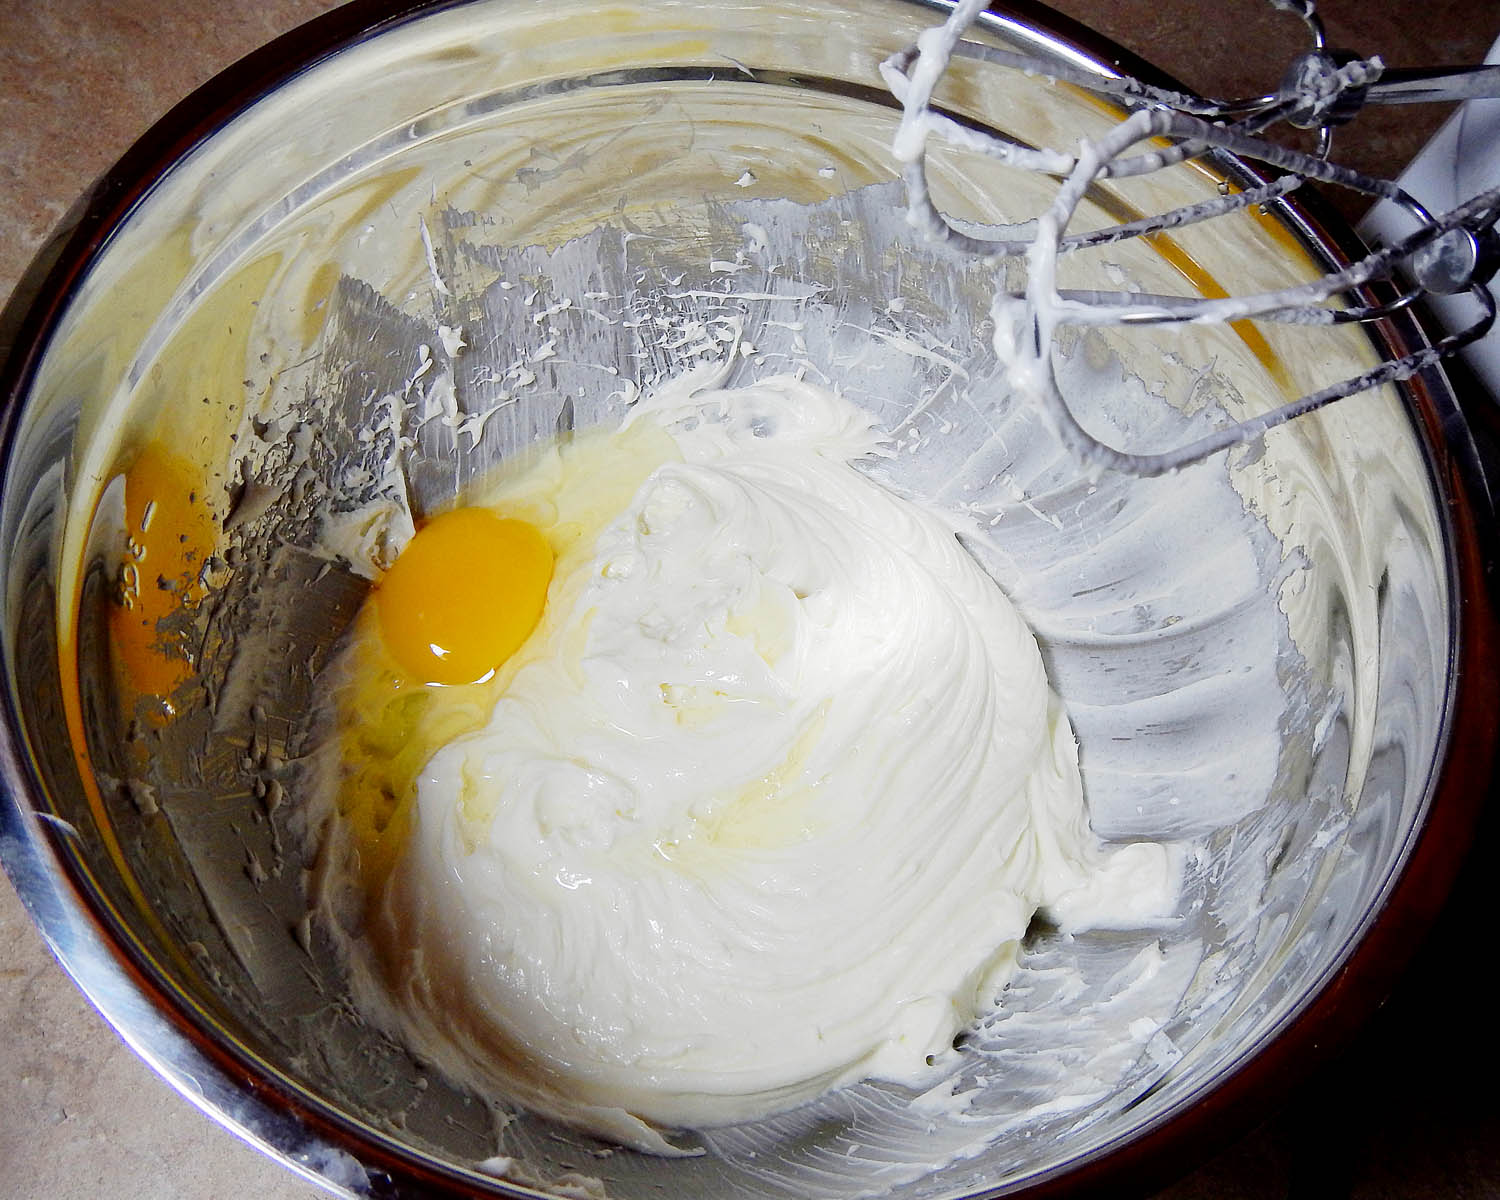 An egg in cheesecake batter